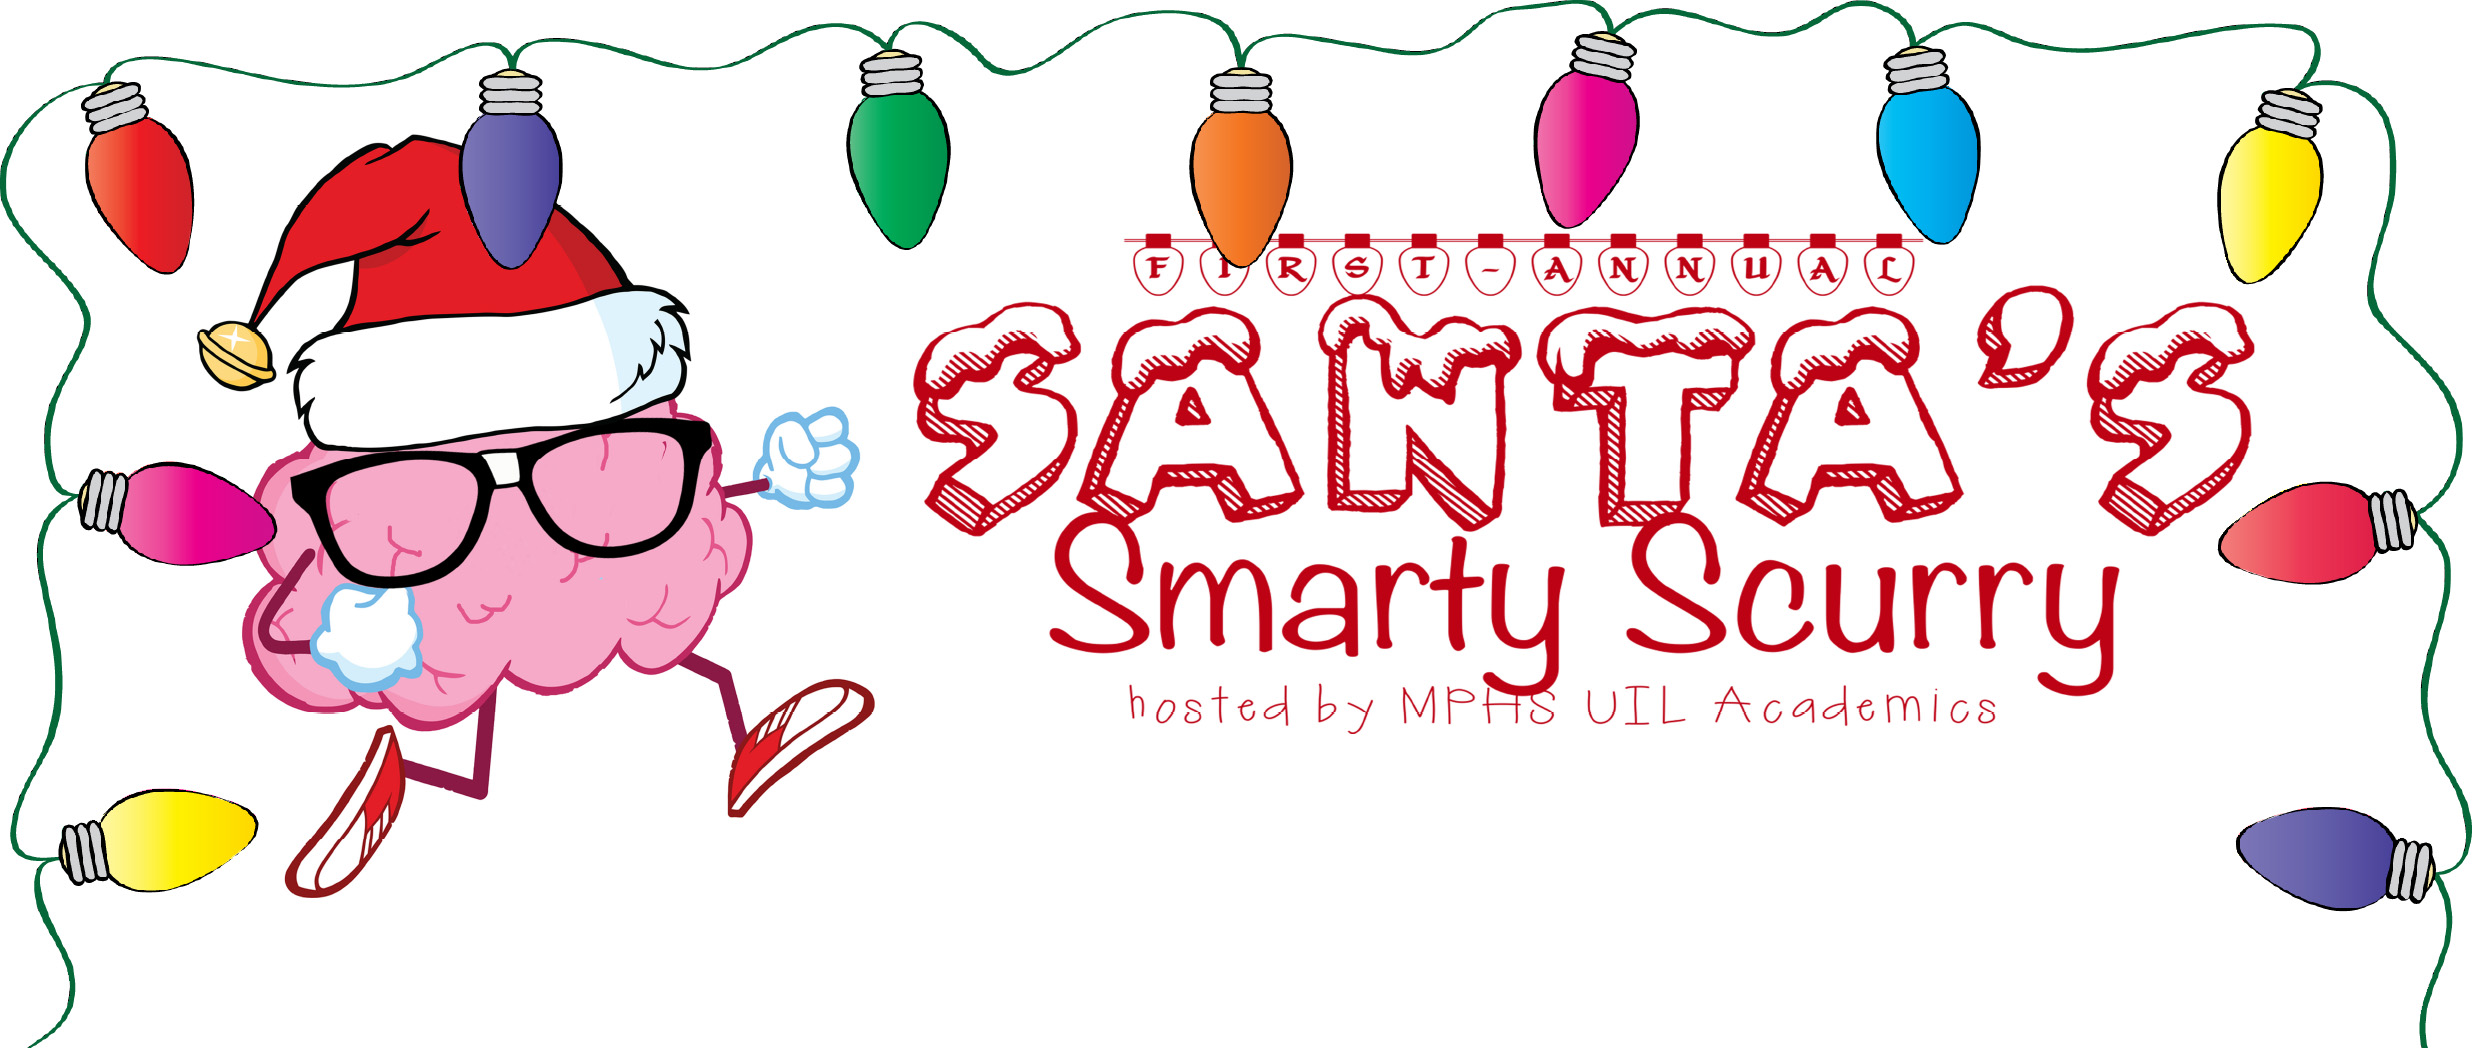 Microsoft Word - Santa Scurry flyer.docx